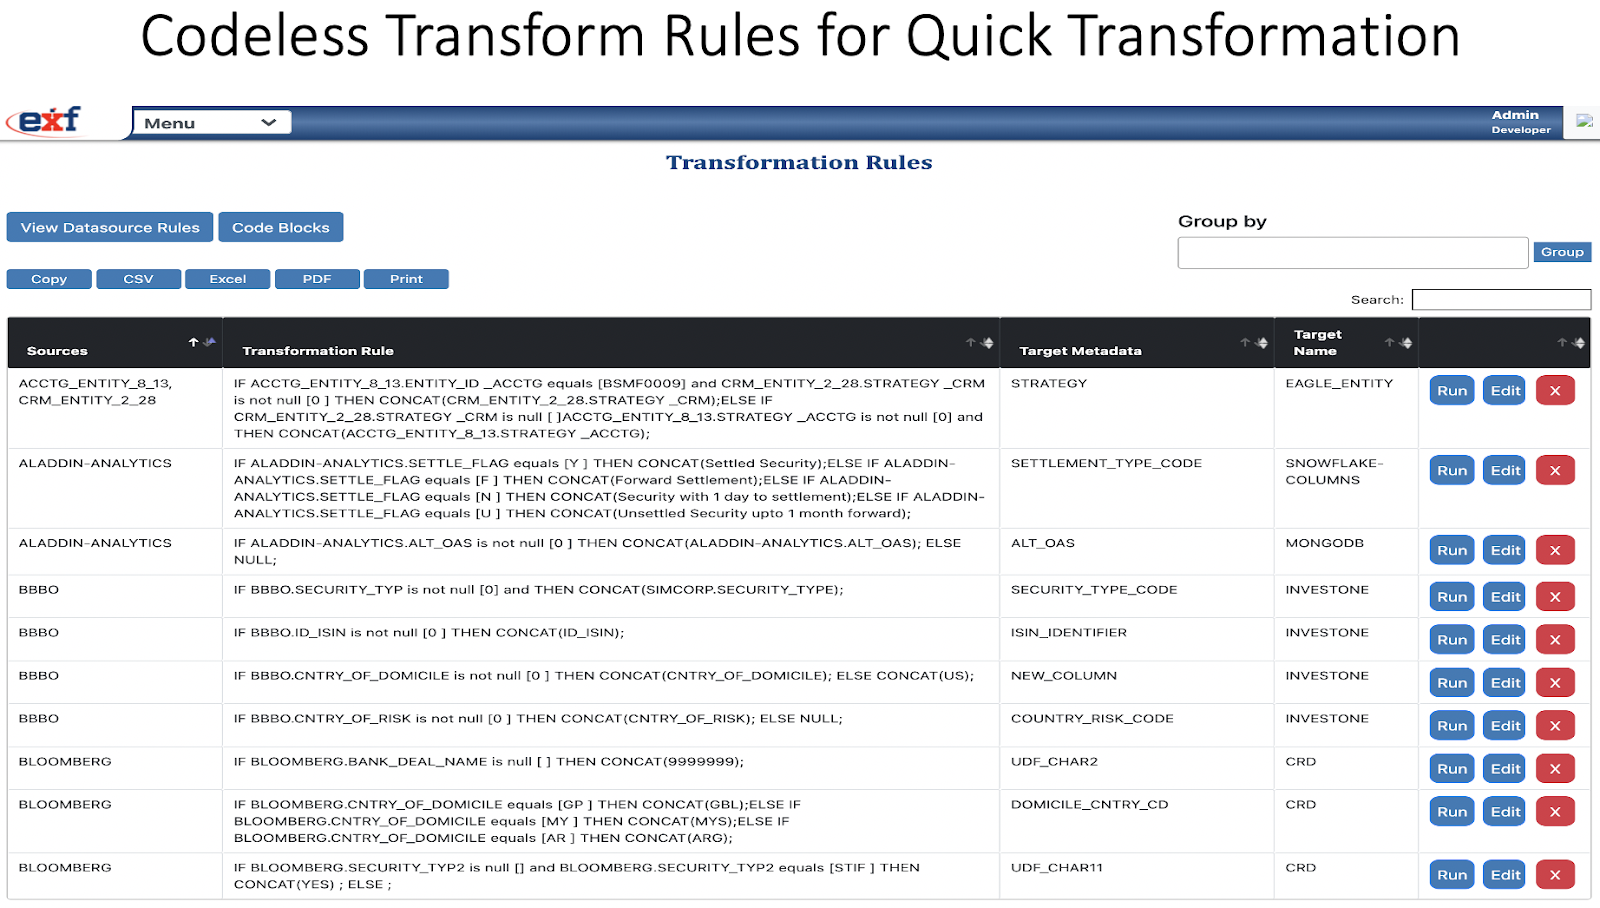 Codeless Transform Rules for Quick Transformation